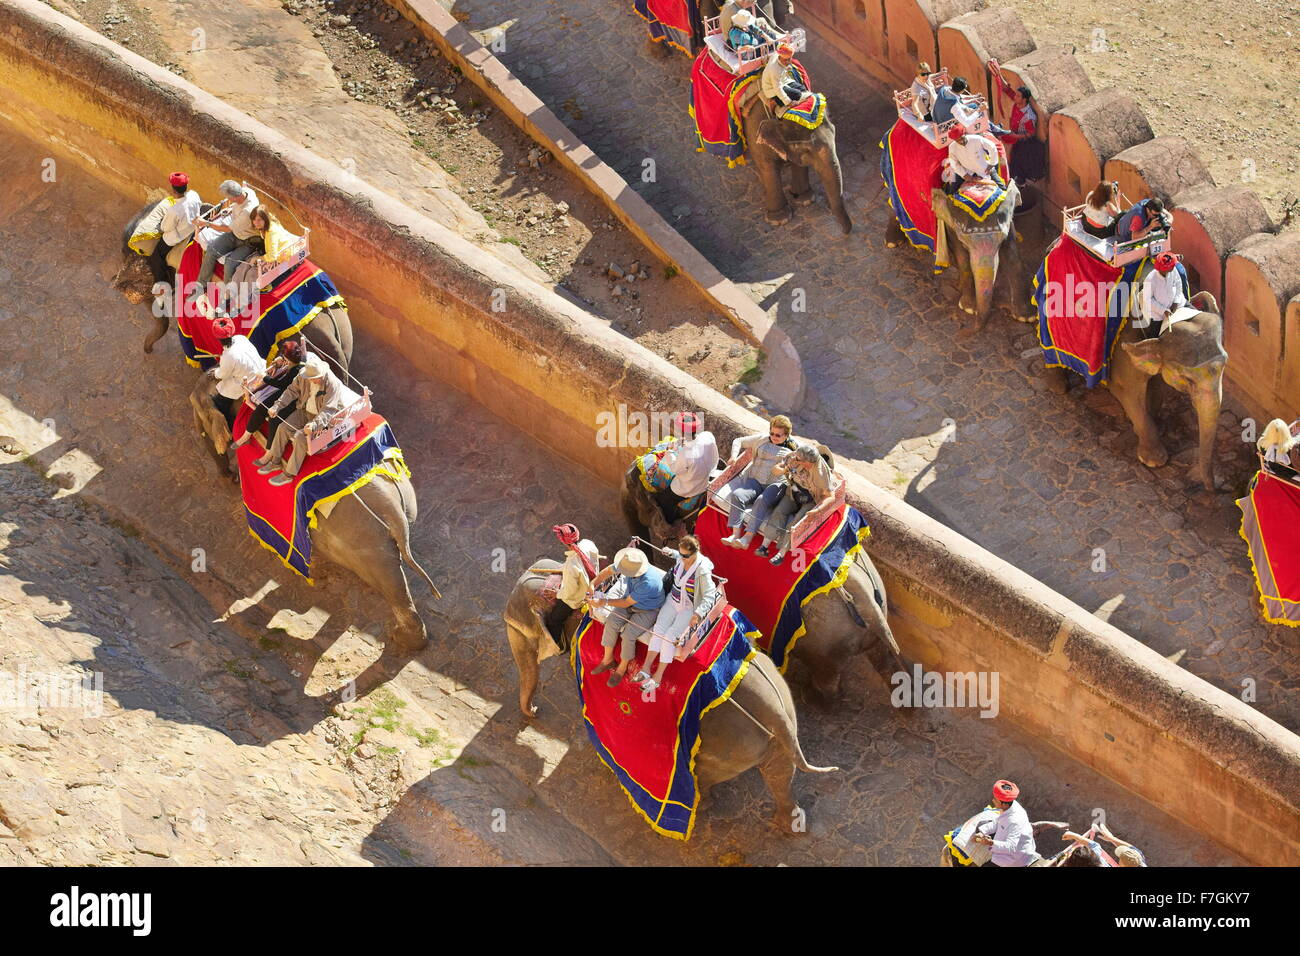 Elephants carrying tourists to the Amber Fort in Jaipur, Rajasthan, India - Stock Image